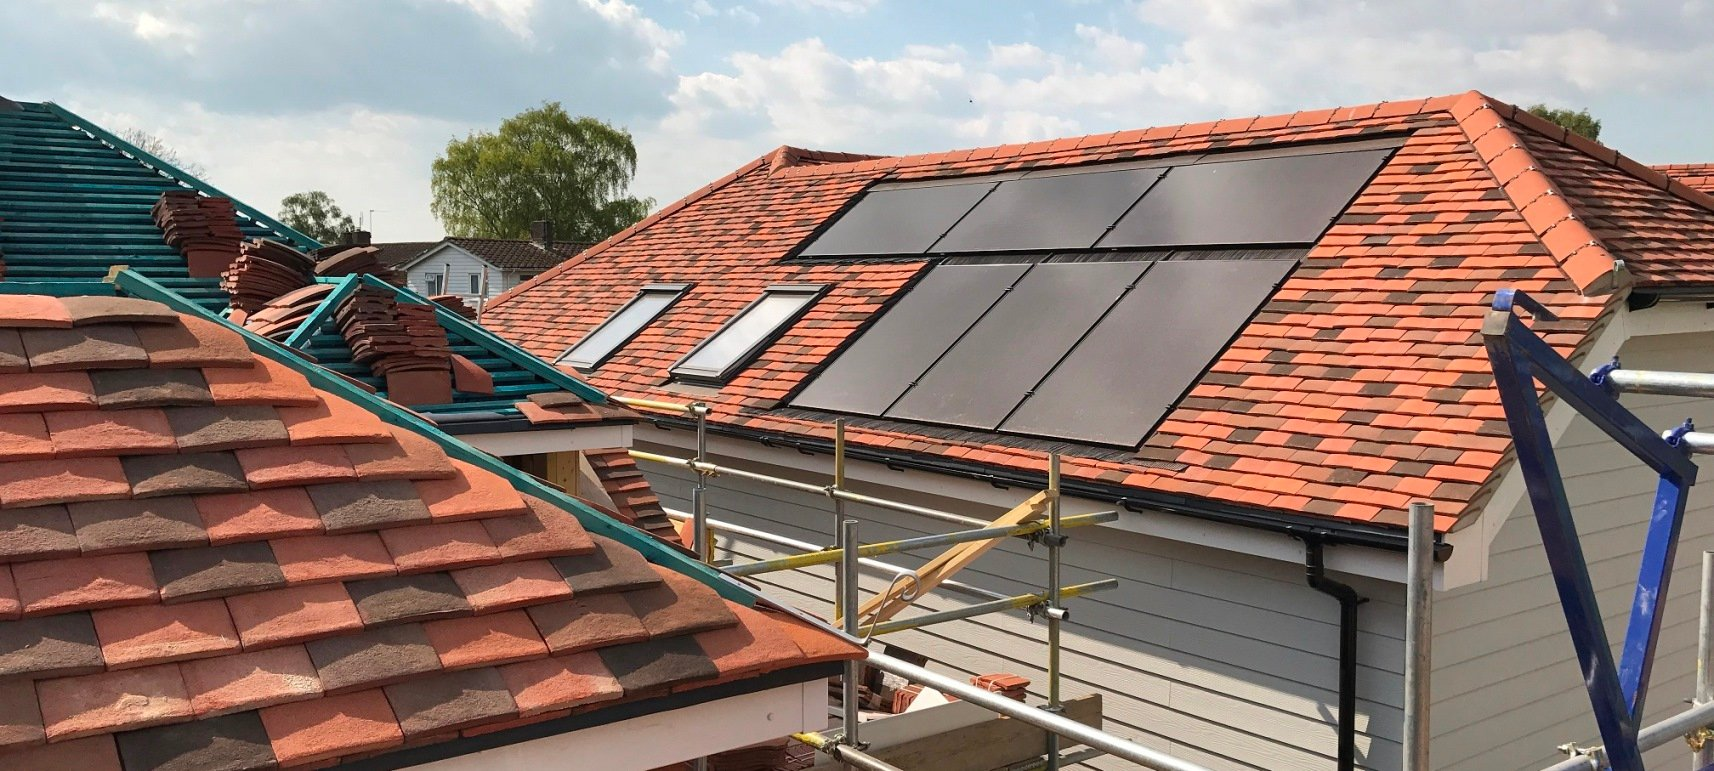 Are Solar Panels Worth It in 2021? Yes, Solar Power Costs 8p/kWh!